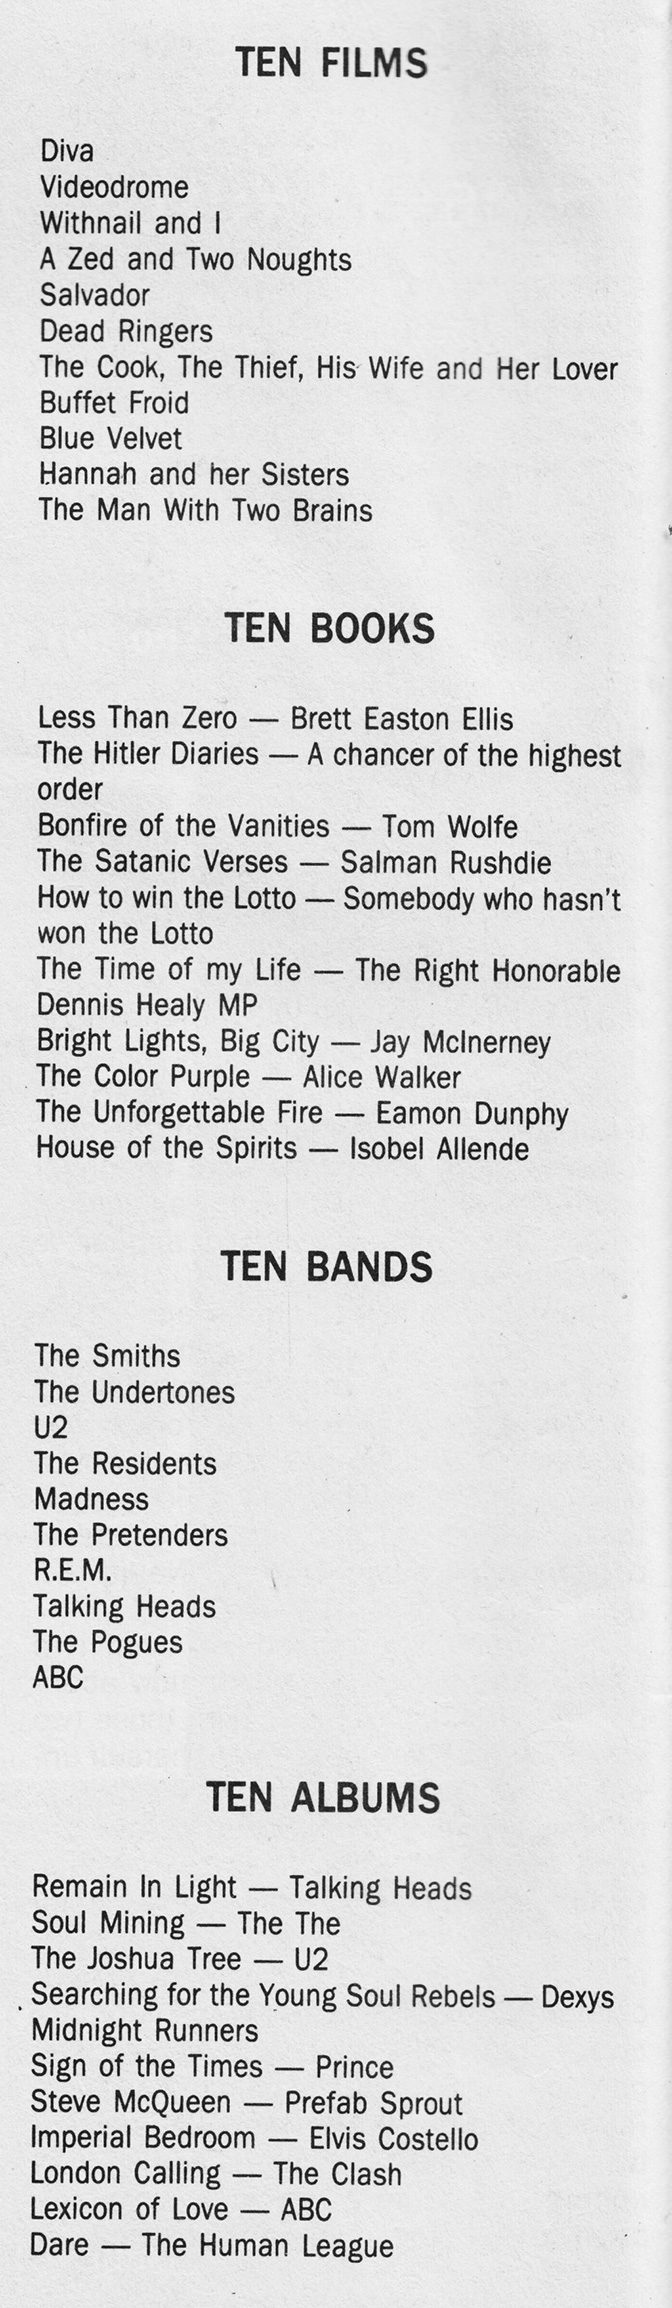 80s-rtevisited-best-p1-chart